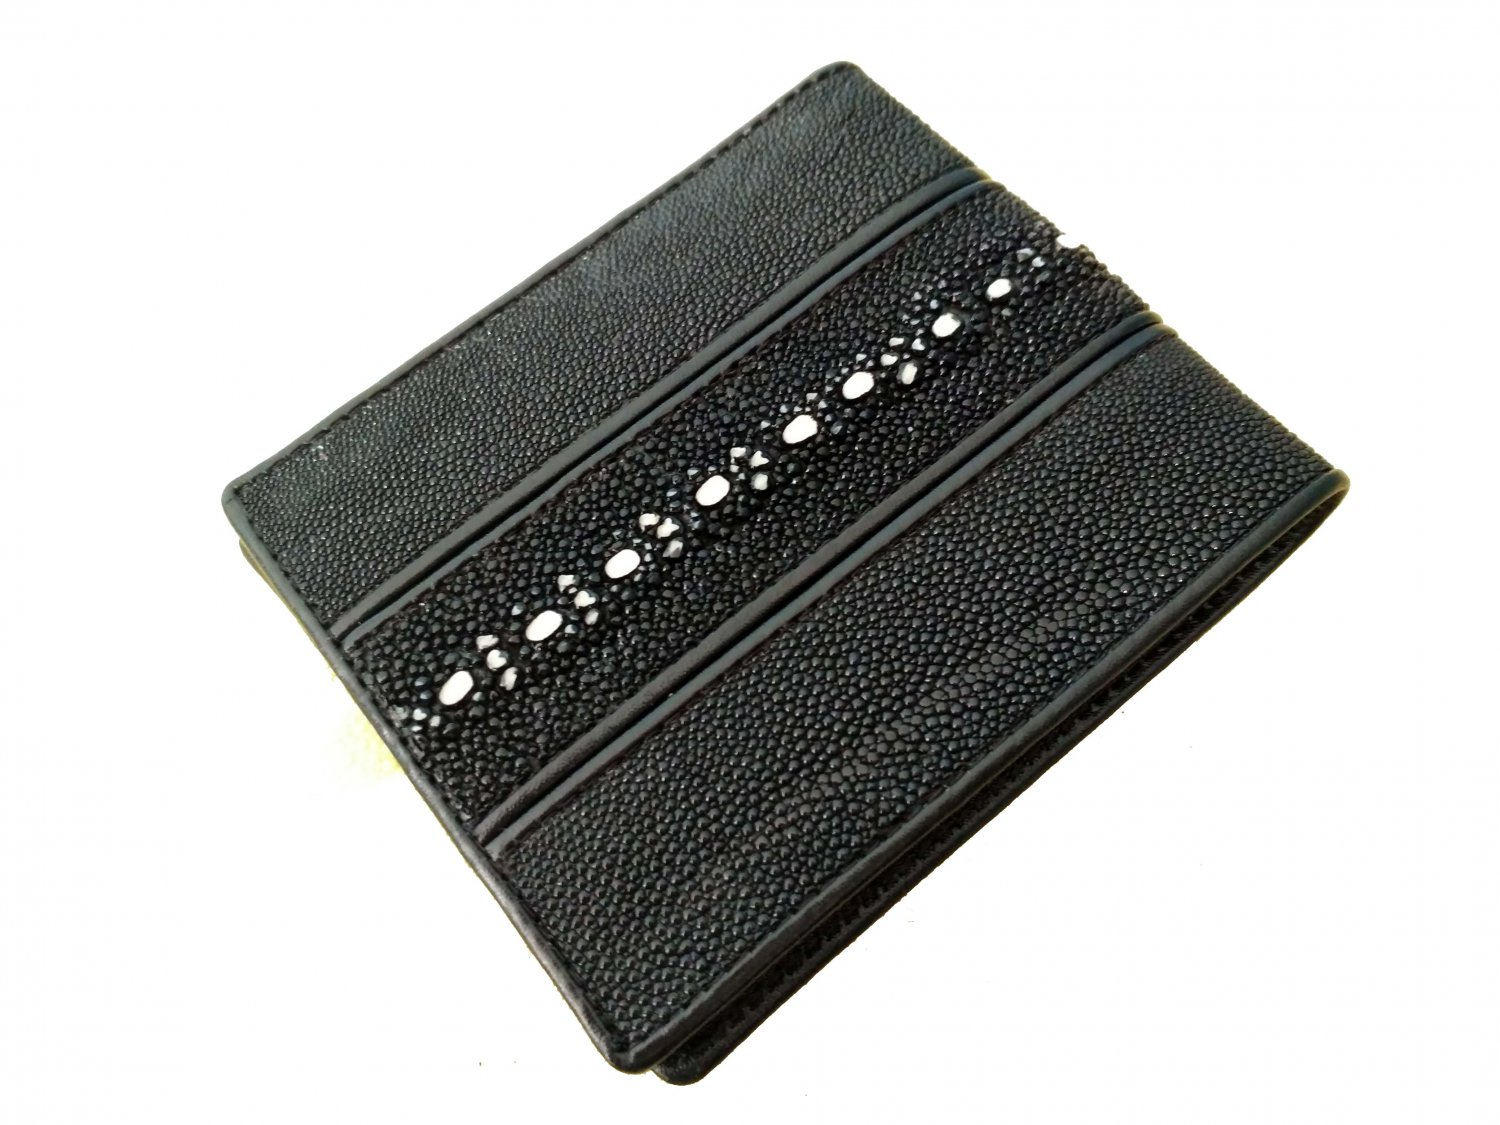 Real Leather Wallet For Men Black Color Bifold Wallet Stingray Backbone Double Line